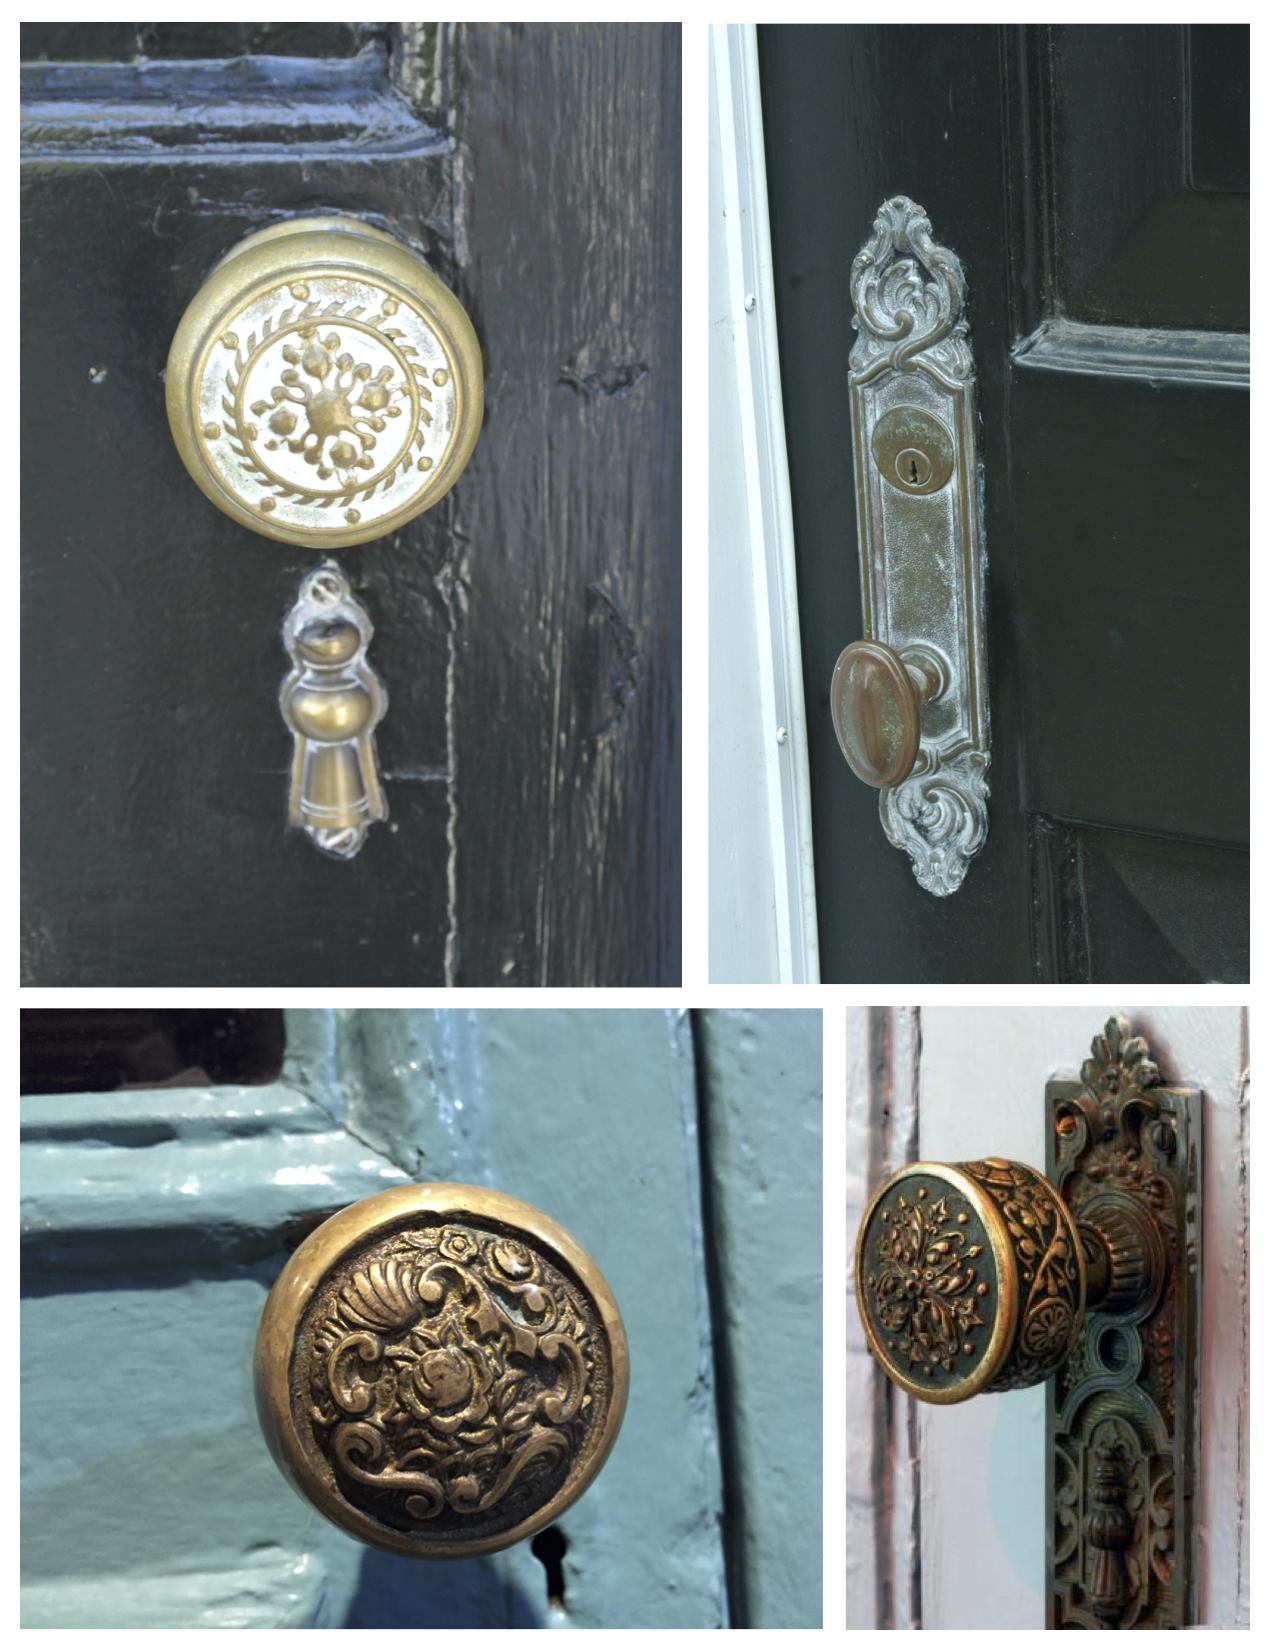 Details Of Past Elegance: The Vintage Door Knob - Form & Function Of Architectural Features: The Artistry Of Vintage